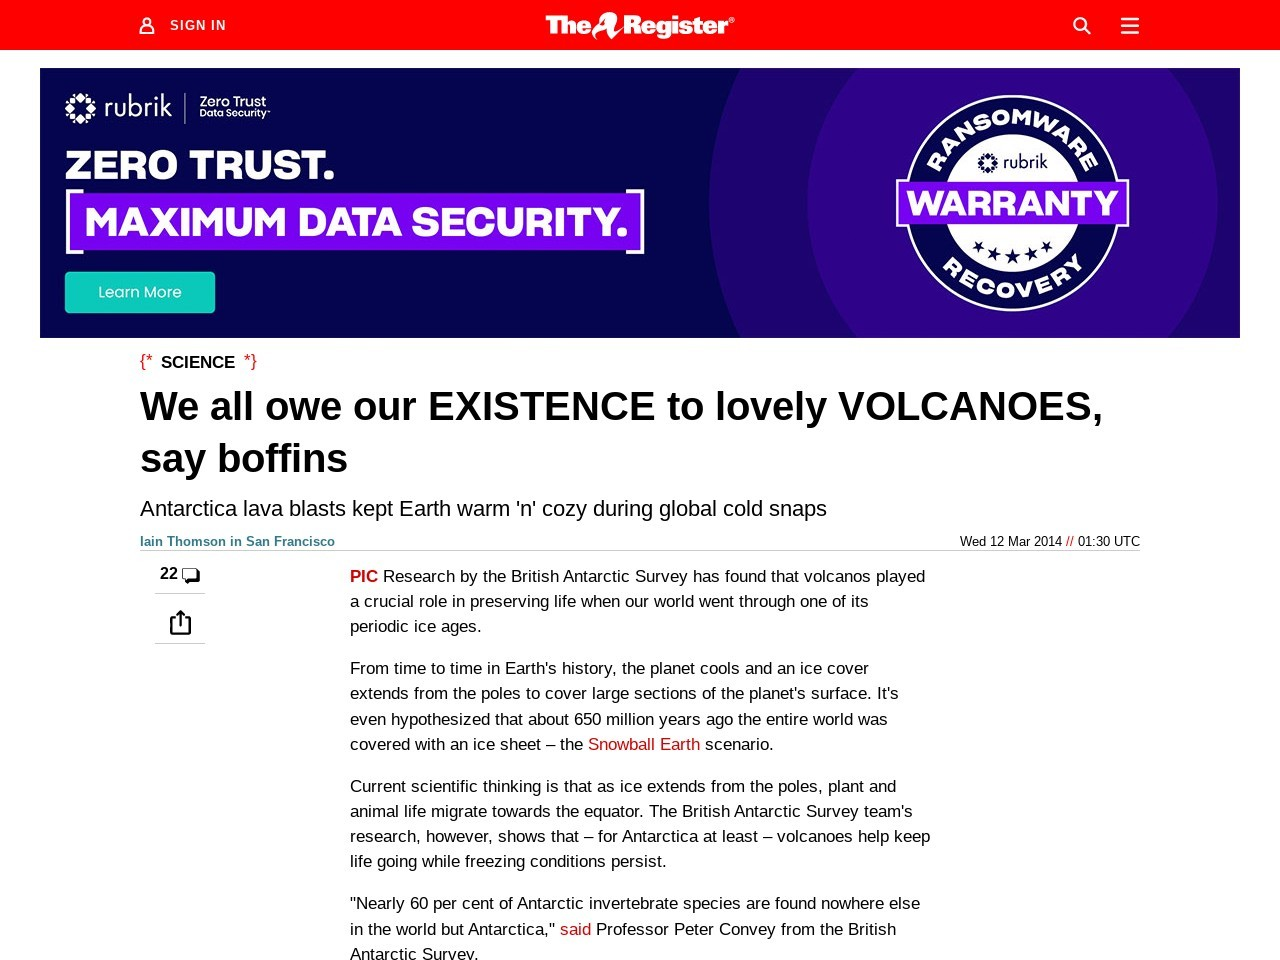 We all owe our EXISTENCE to lovely VOLCANOES, say boffins